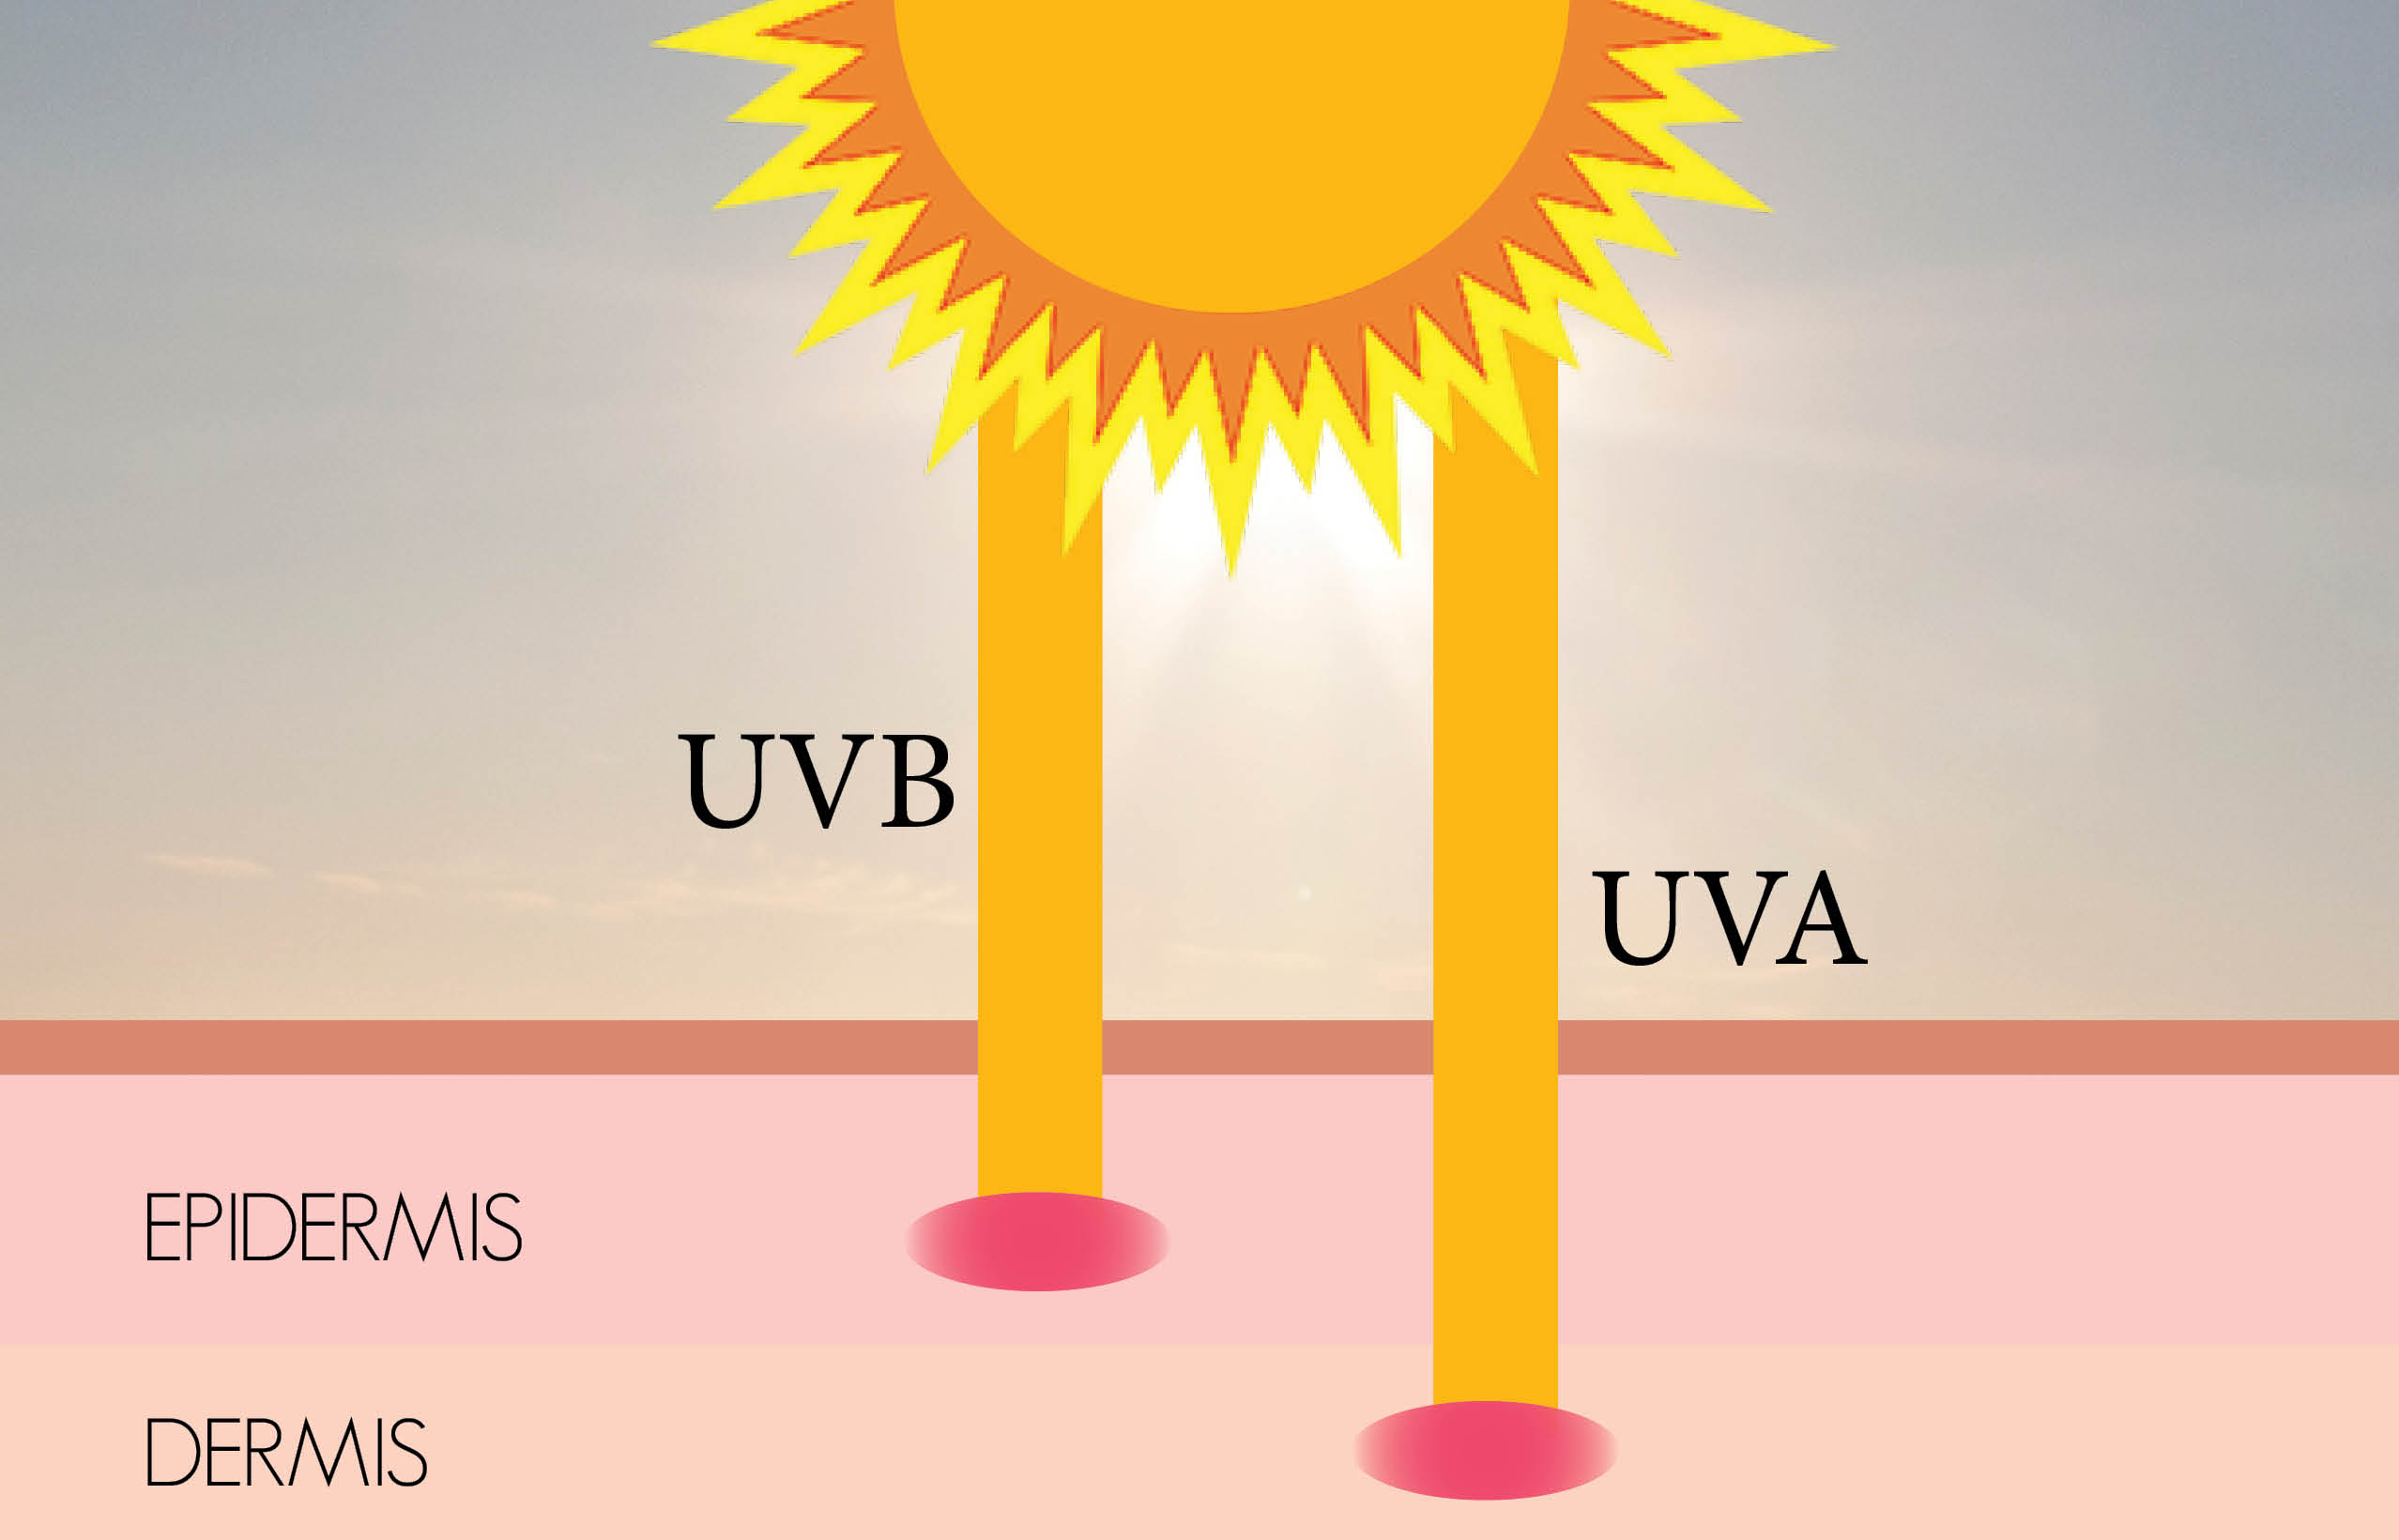 Skin clipart uv radiation. Sun facts prolonged exposure